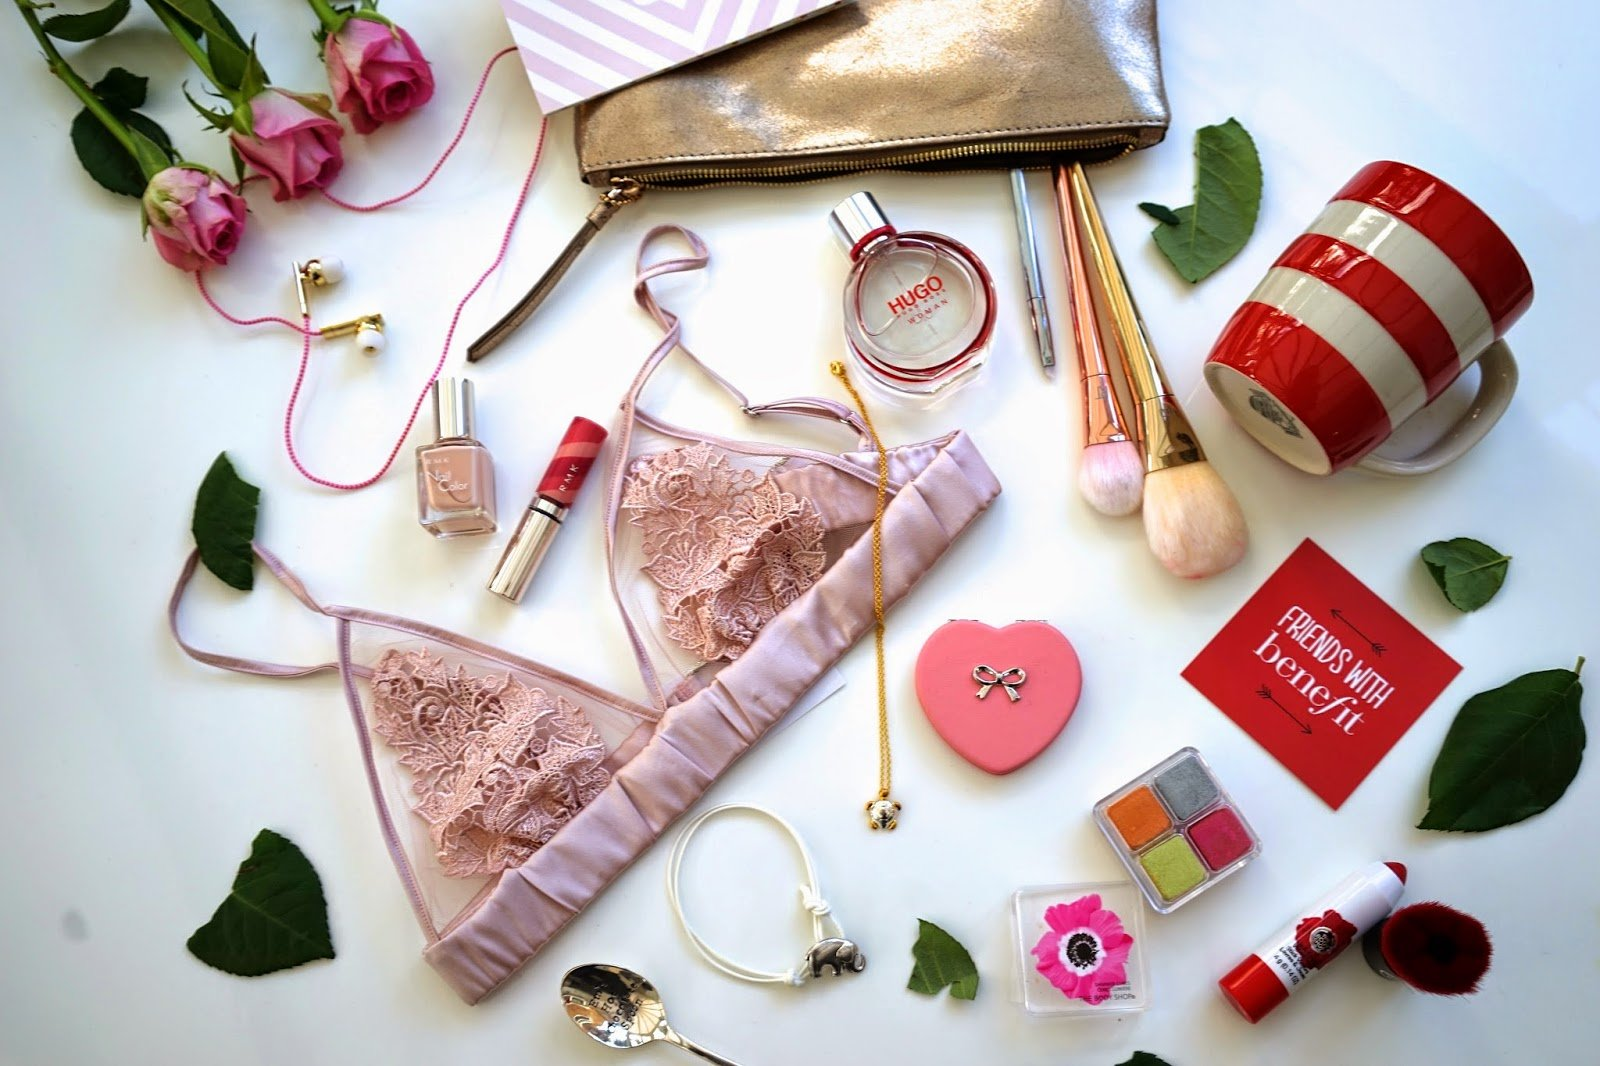 · The Ultimate Valentines Day Ideas (and Gifts!) for It's officially ~that~ time of year. From Valentine's gifts to the sweetest treats and funniest cards we've got you covered and will help get you through the most loving day of the year.